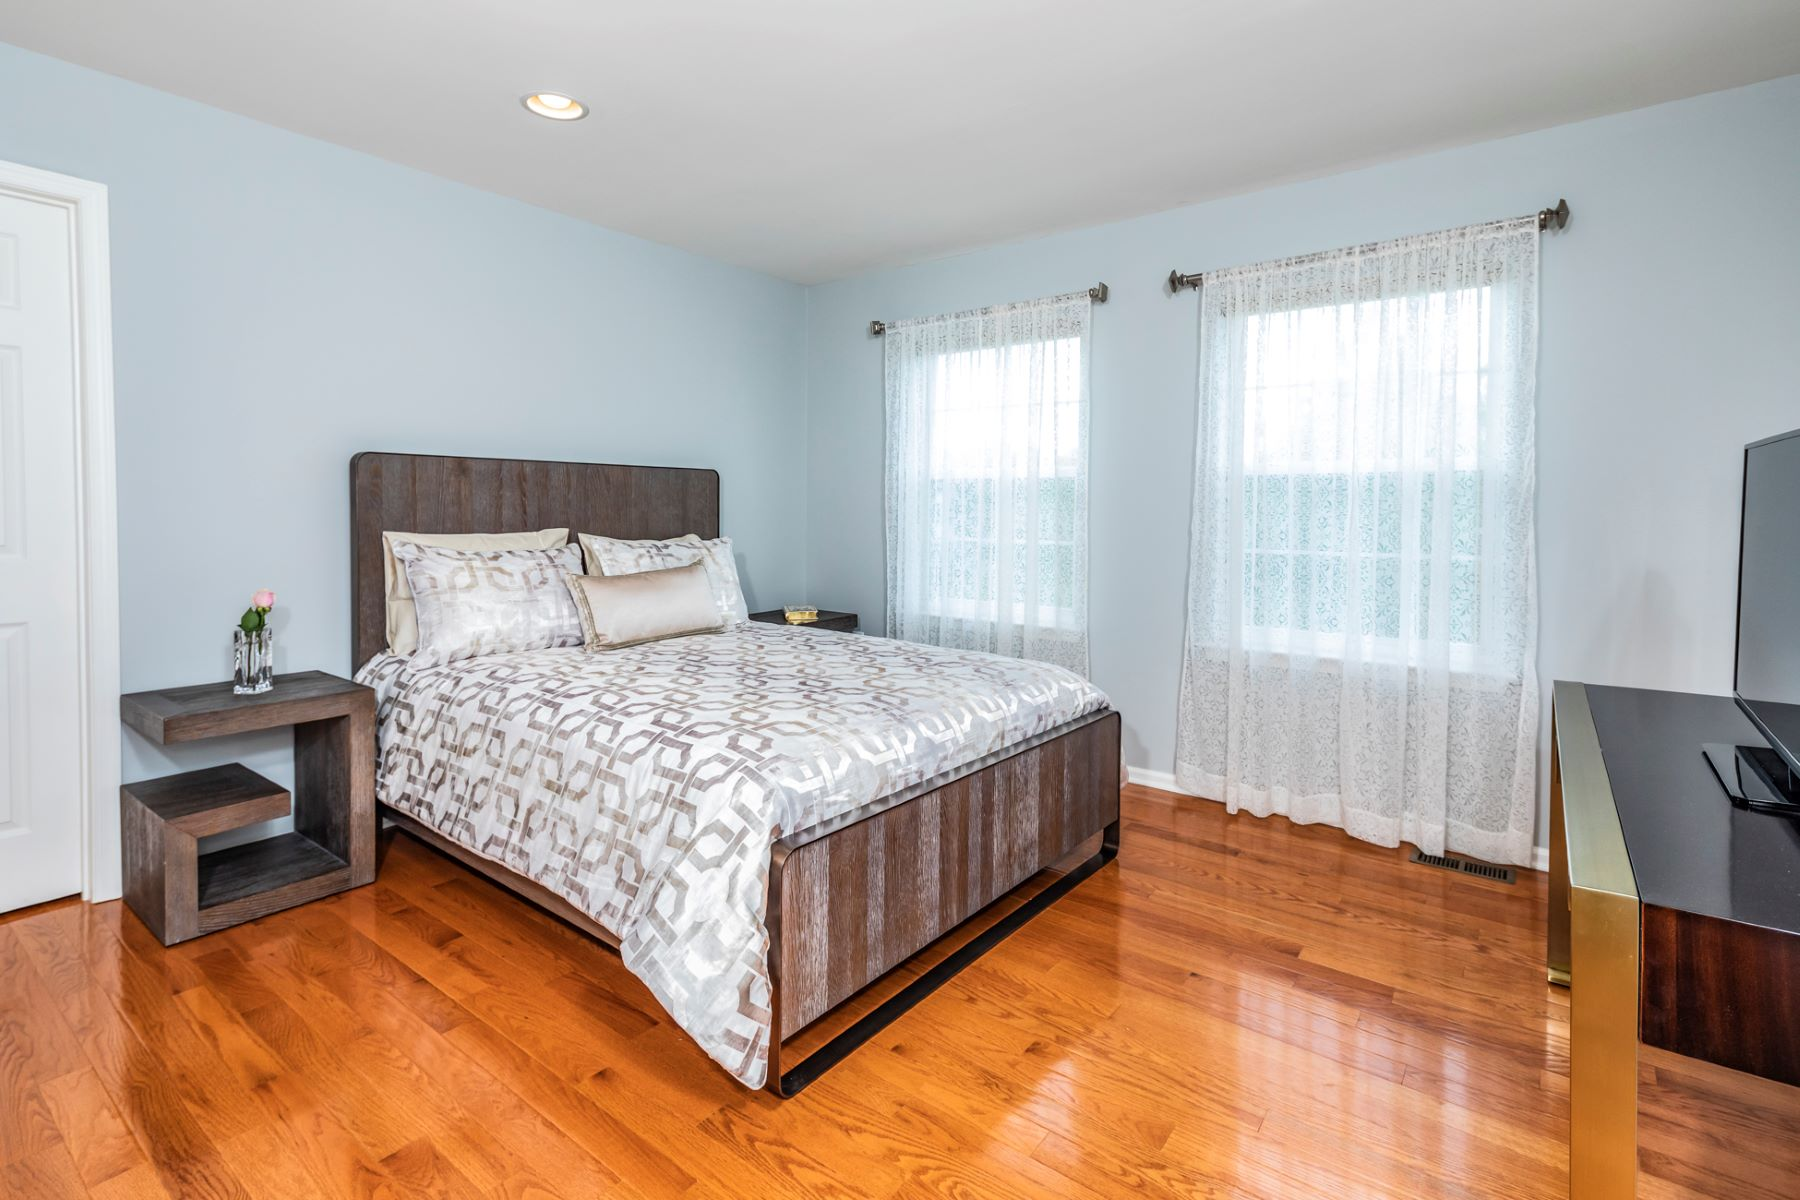 Additional photo for property listing at Perfection for Every Kind of Entertaining 5 Mahogany Court, Plainsboro, New Jersey 08536 United States